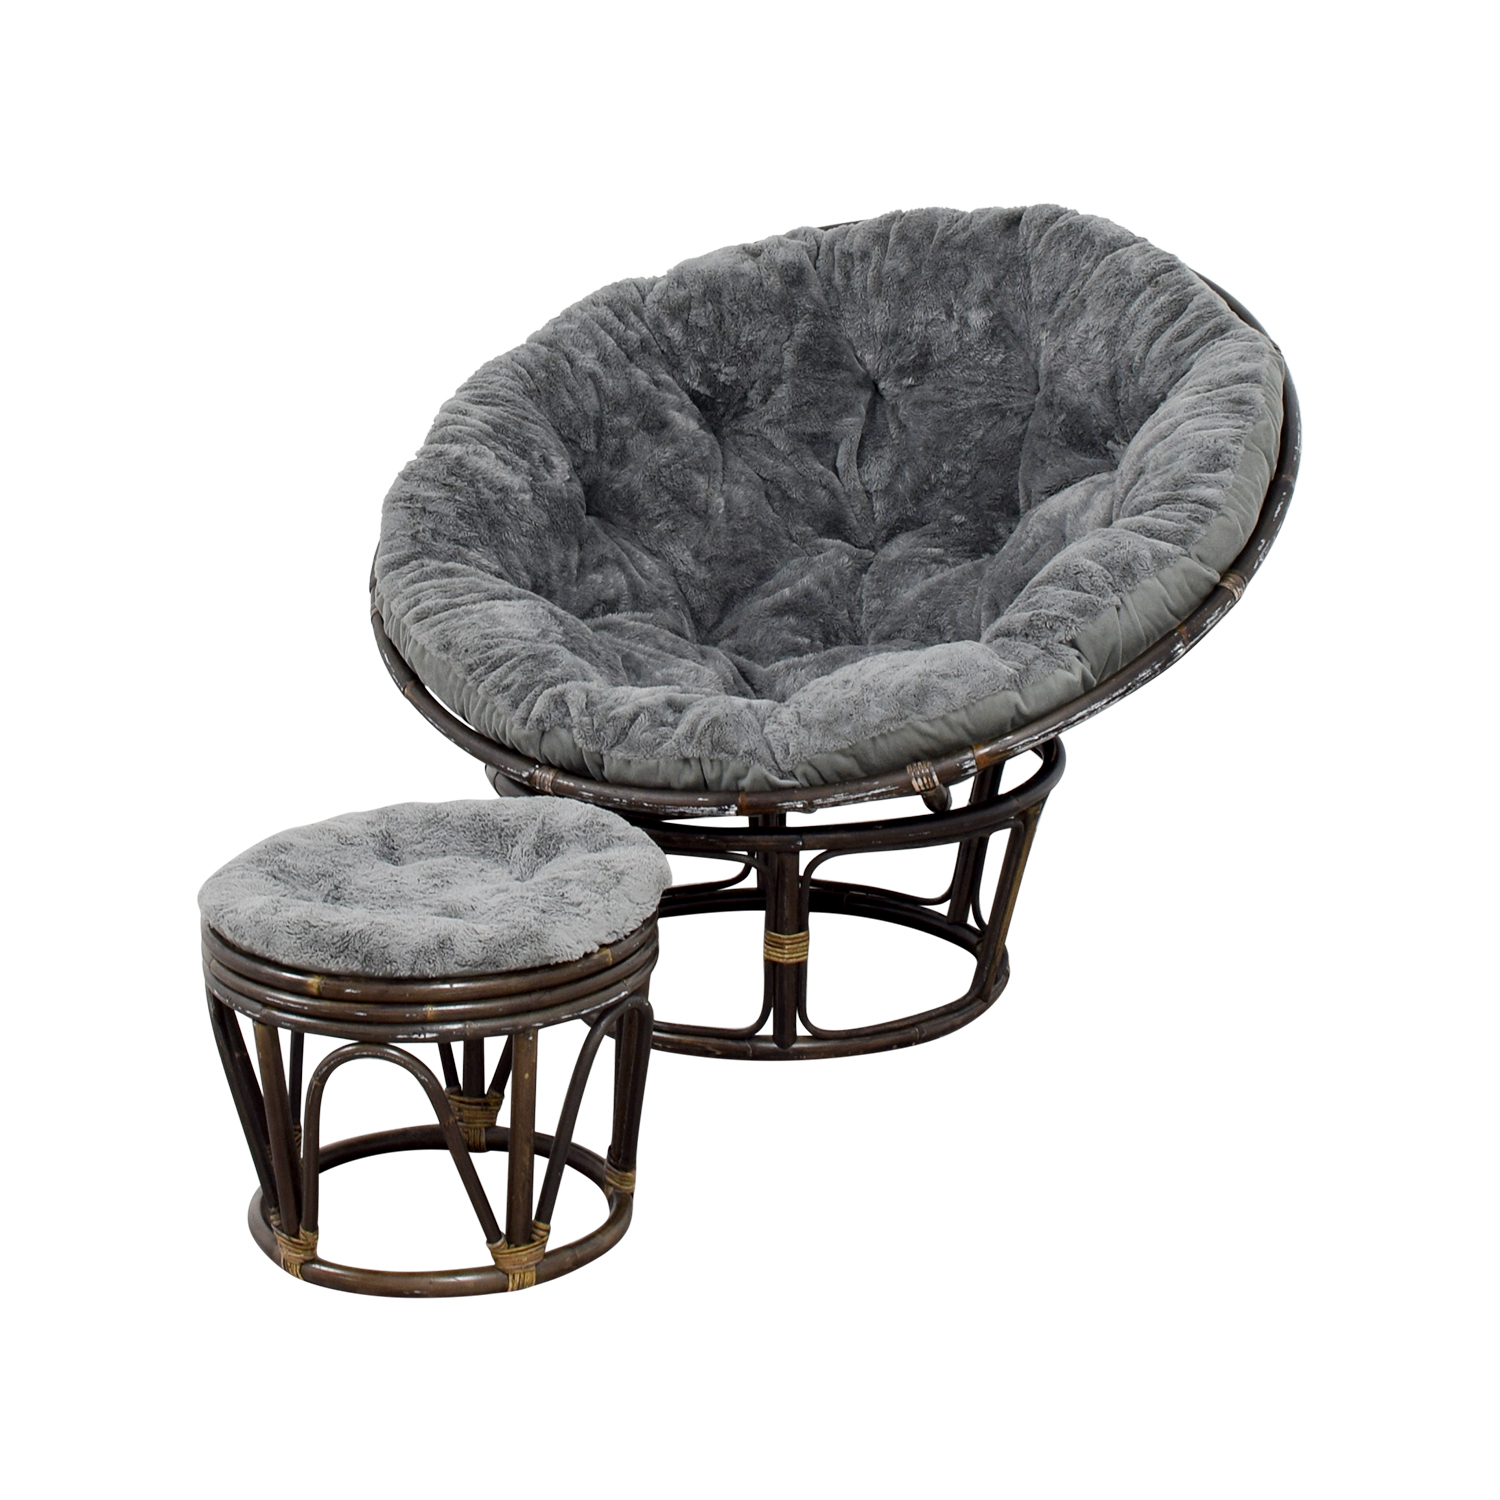 Pier 1 papasan chair with stool sale